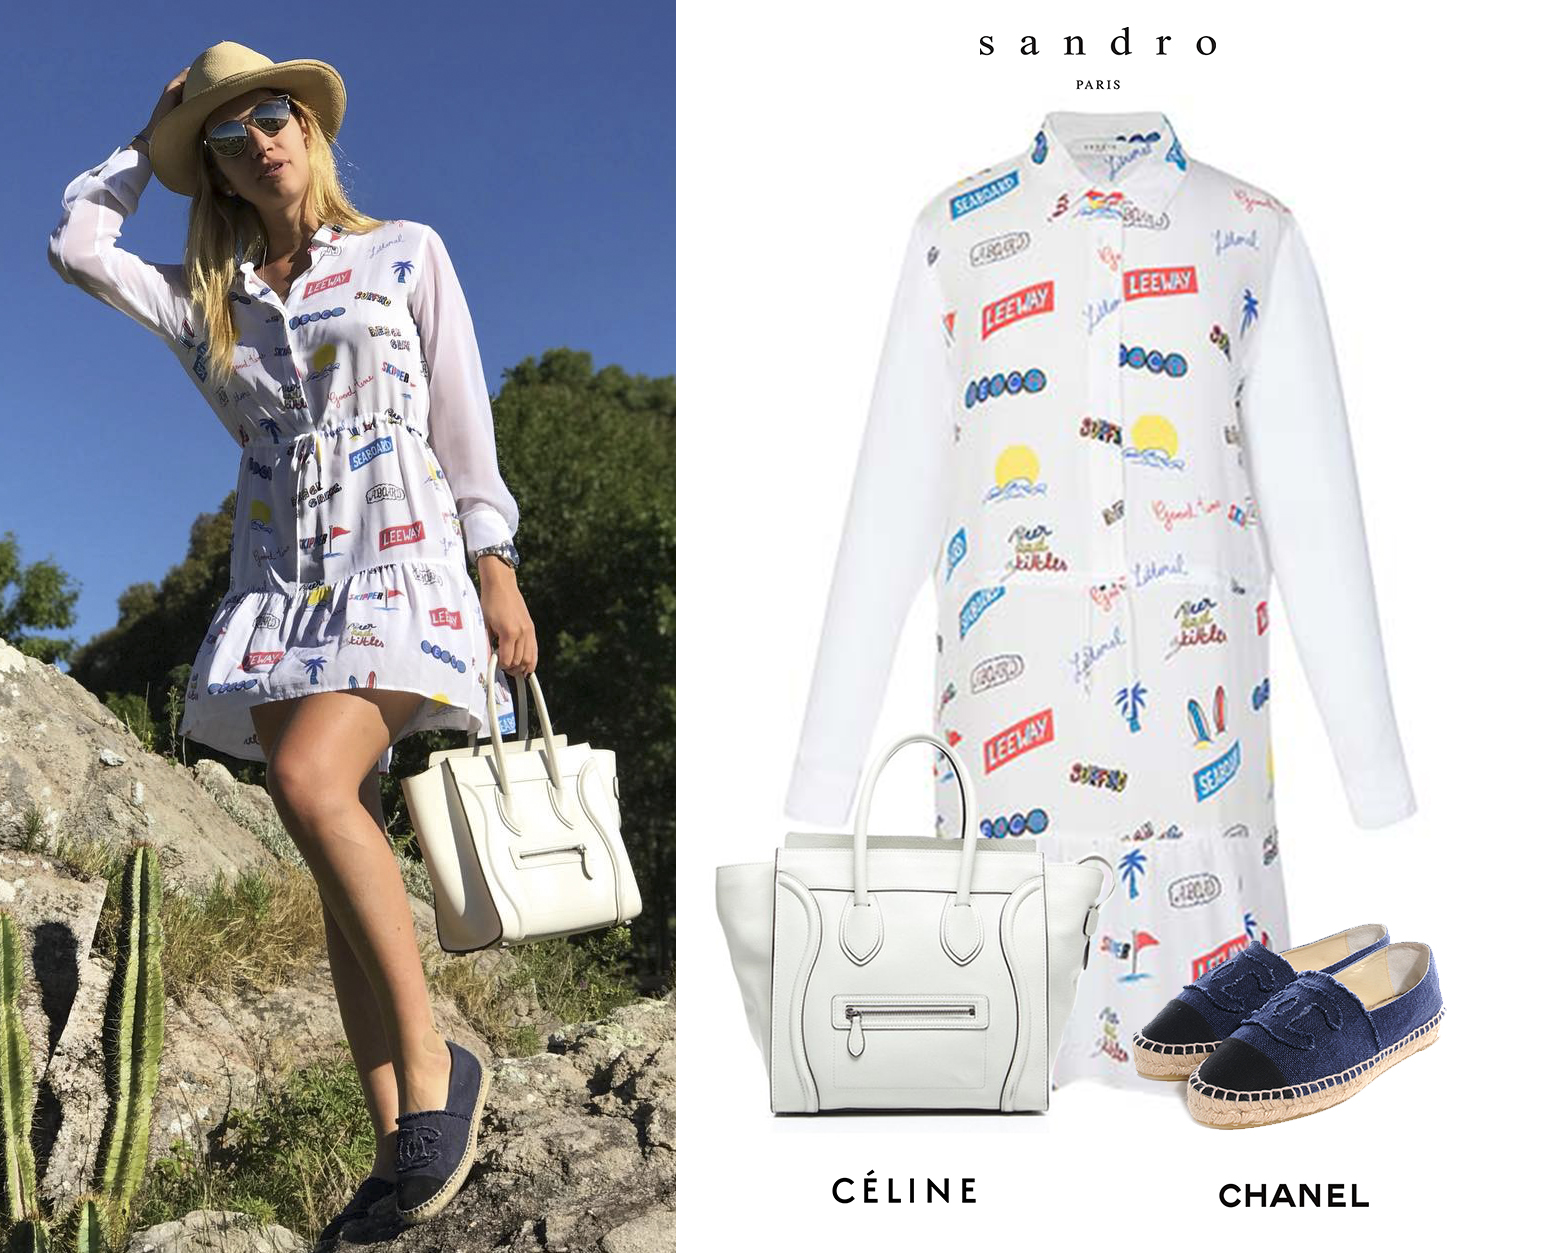 Angie_Angelica_Landaburu_Punta_del_Este_2017_Vestido_Blanco_Printed_White_Dress_Sandro_Paris_Chanel_Spadrilles_Celine_White_Bag.jpg